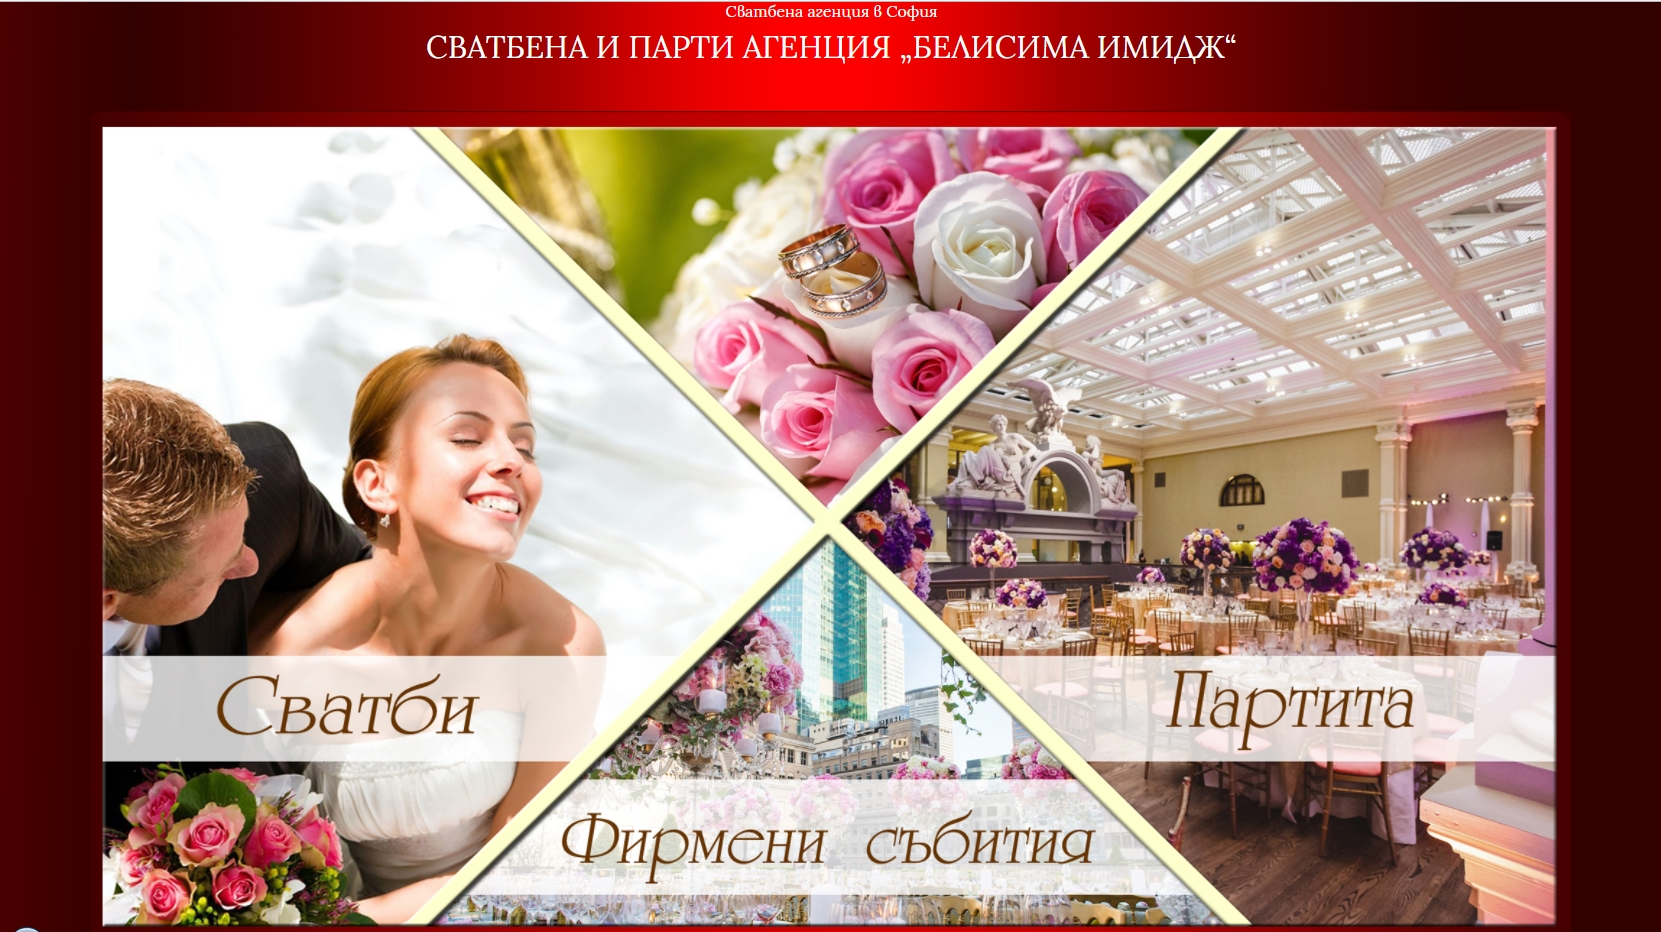 webdesign_wedding1